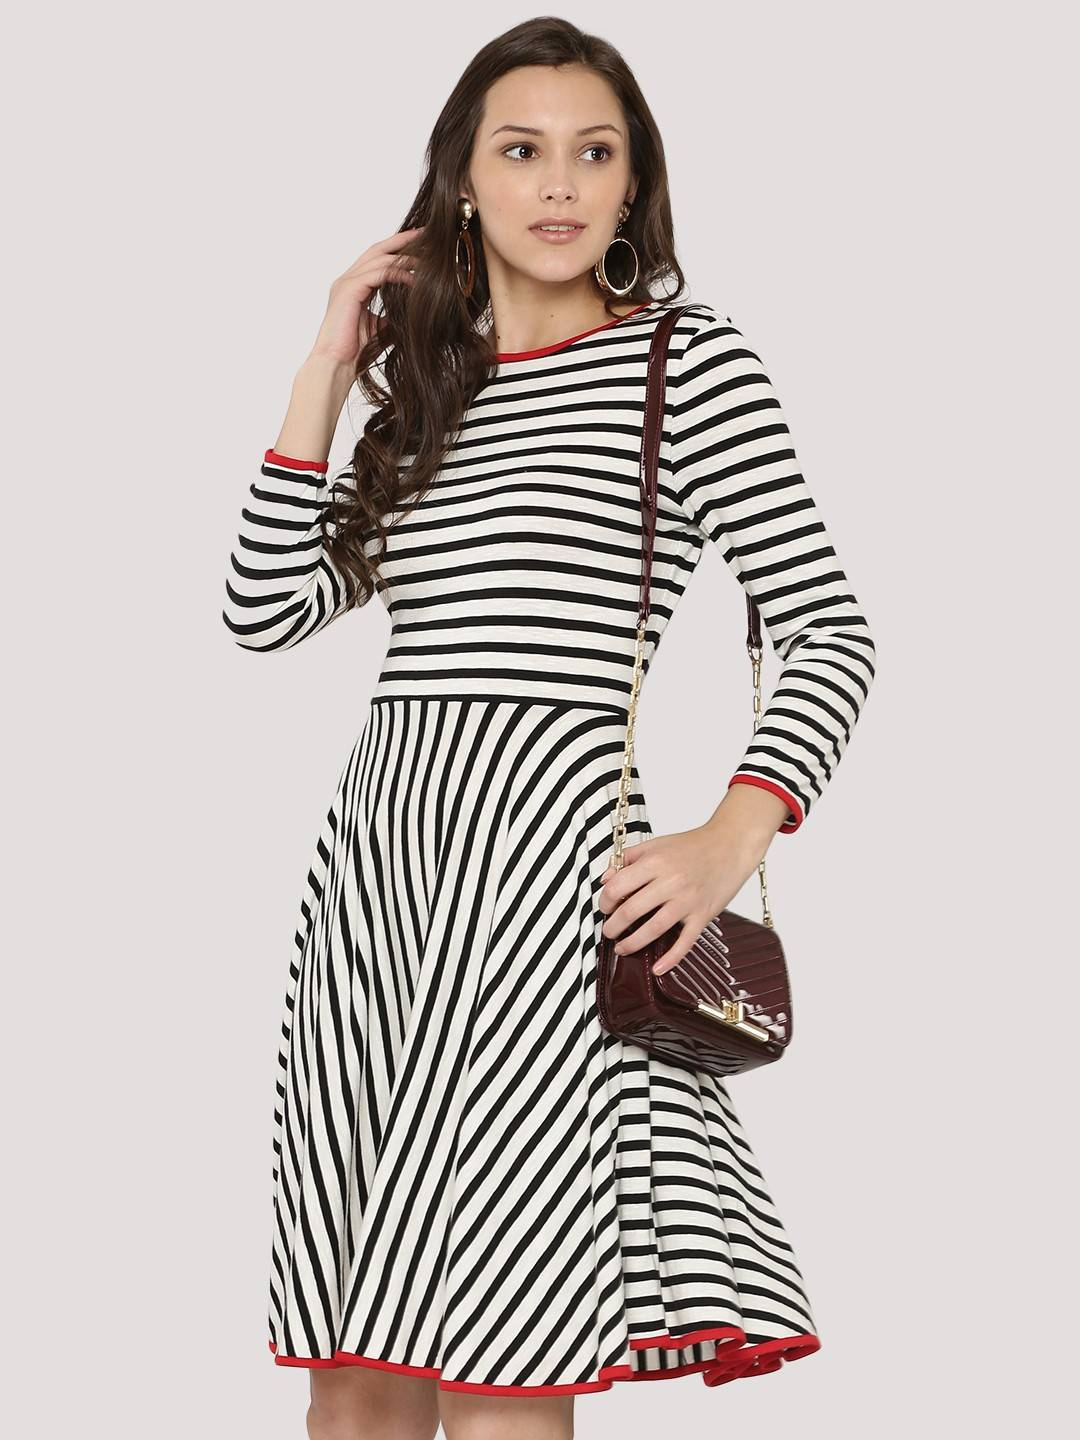 Buy 1 ,Get 20% OFF | Buy 2, Get 30% OFF on Party Wear Dresses, Summer wear Collections for Women.